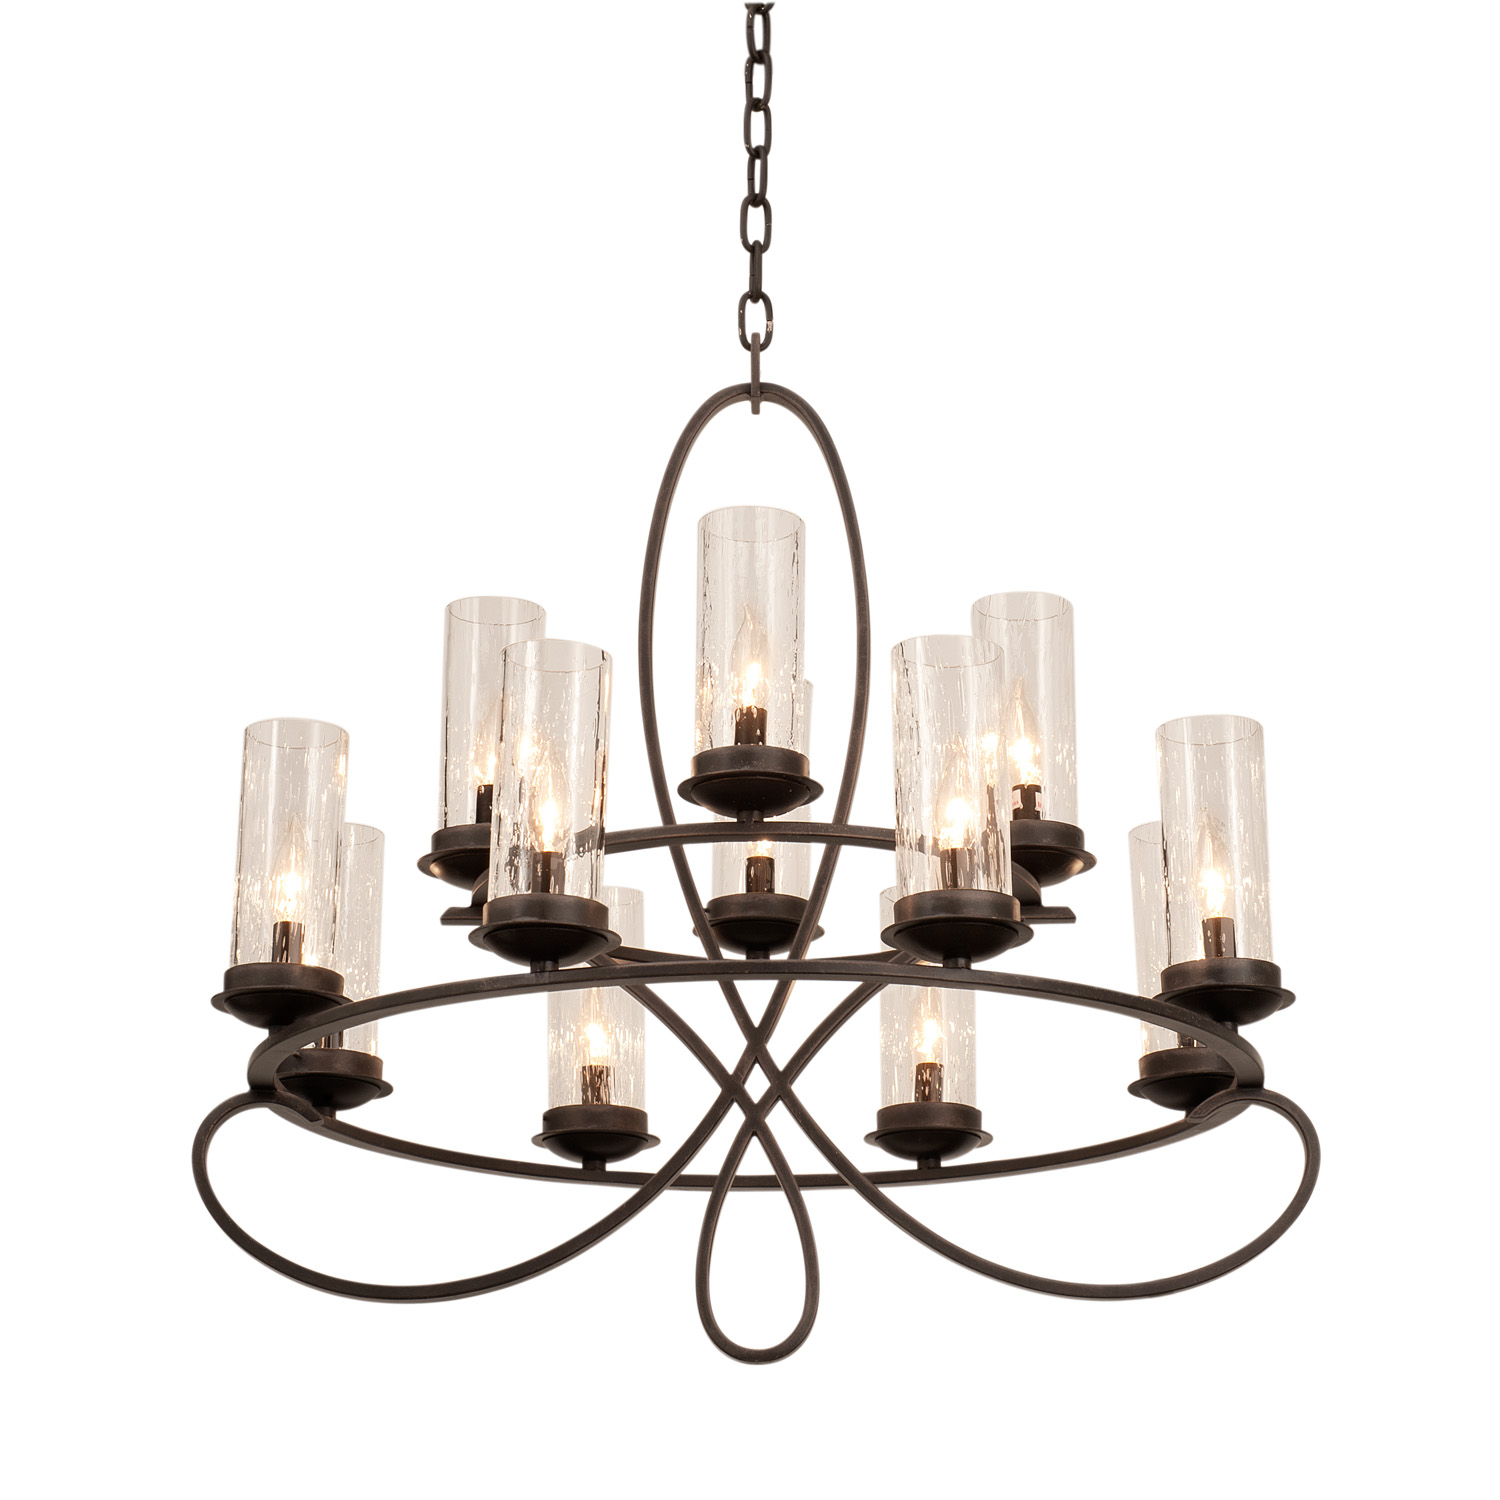 Grayson 12 light chandelier kalco add to wishlist loading aloadofball Choice Image